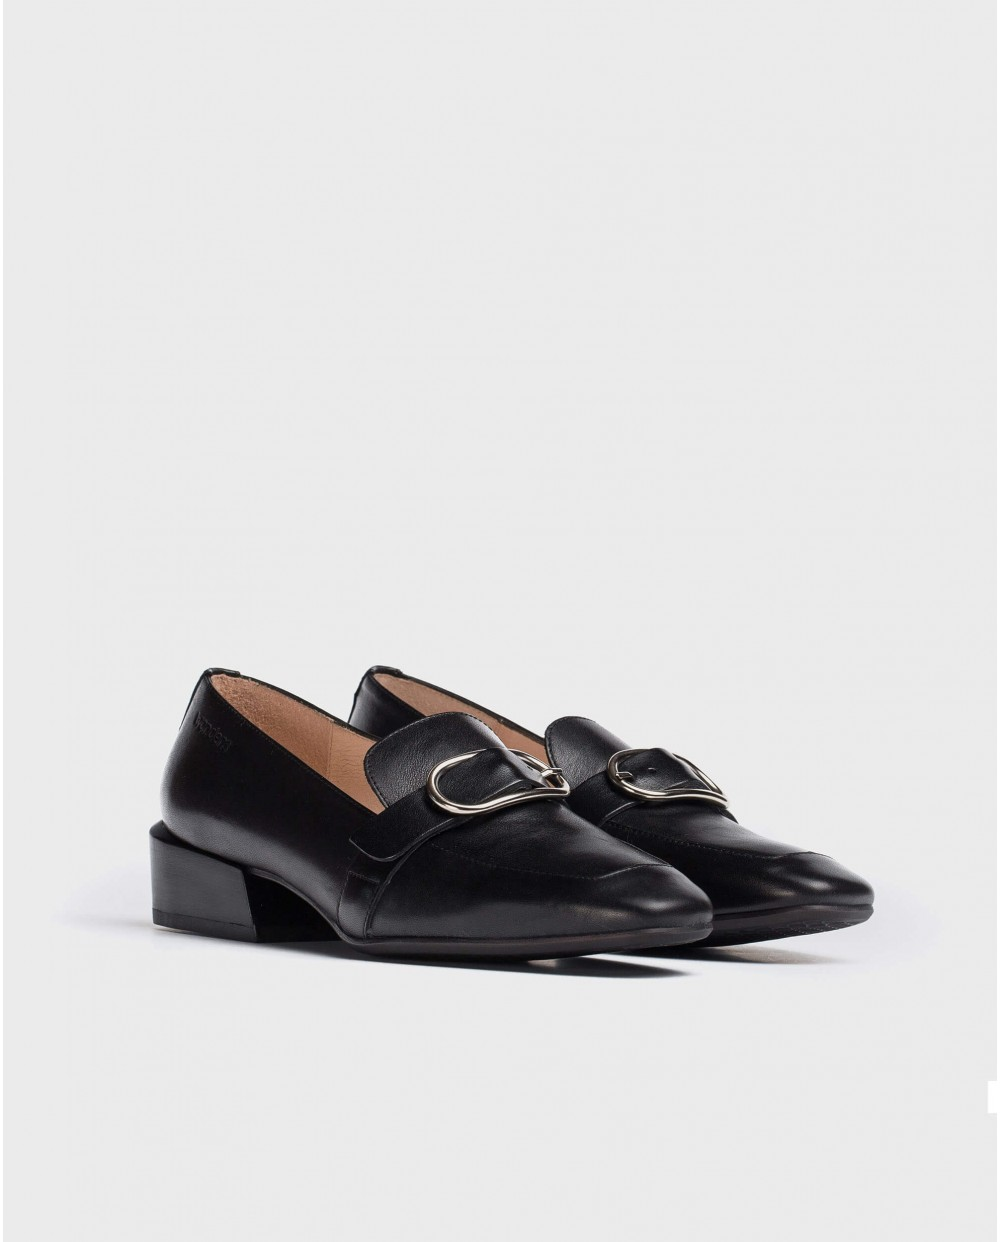 Wonders-Flat Shoes-Moccasin with buckle